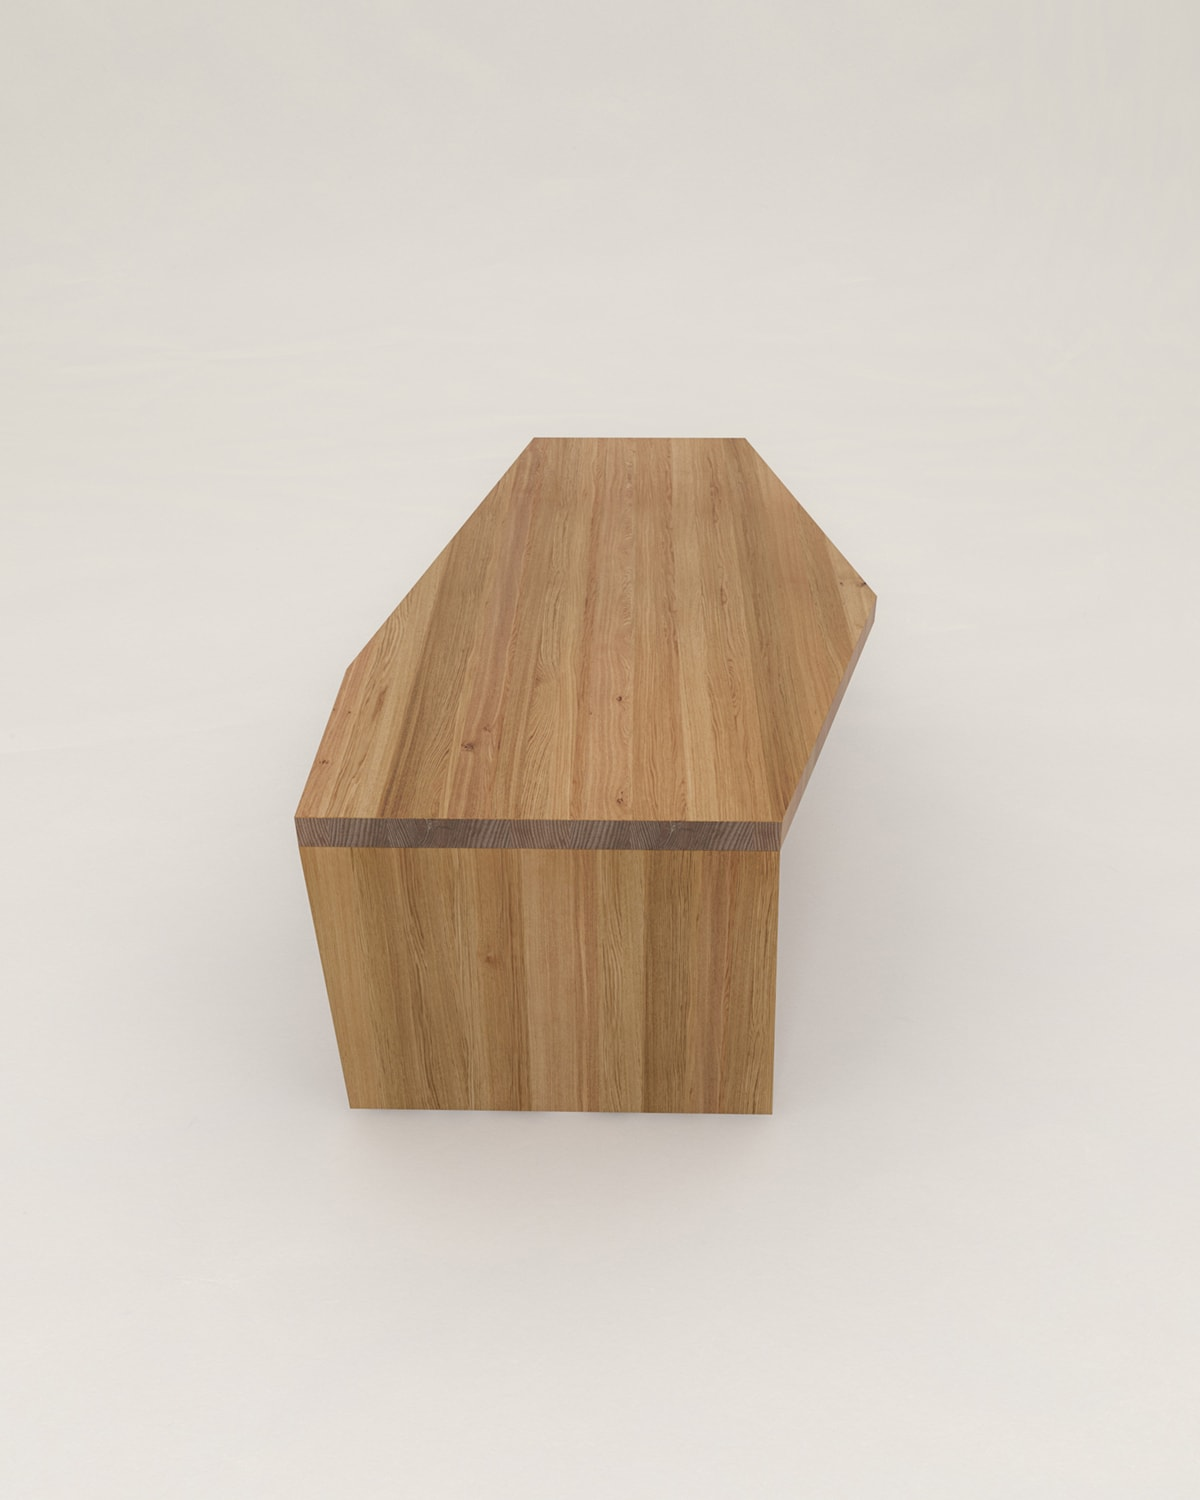 crooked_coffee_table_03_2